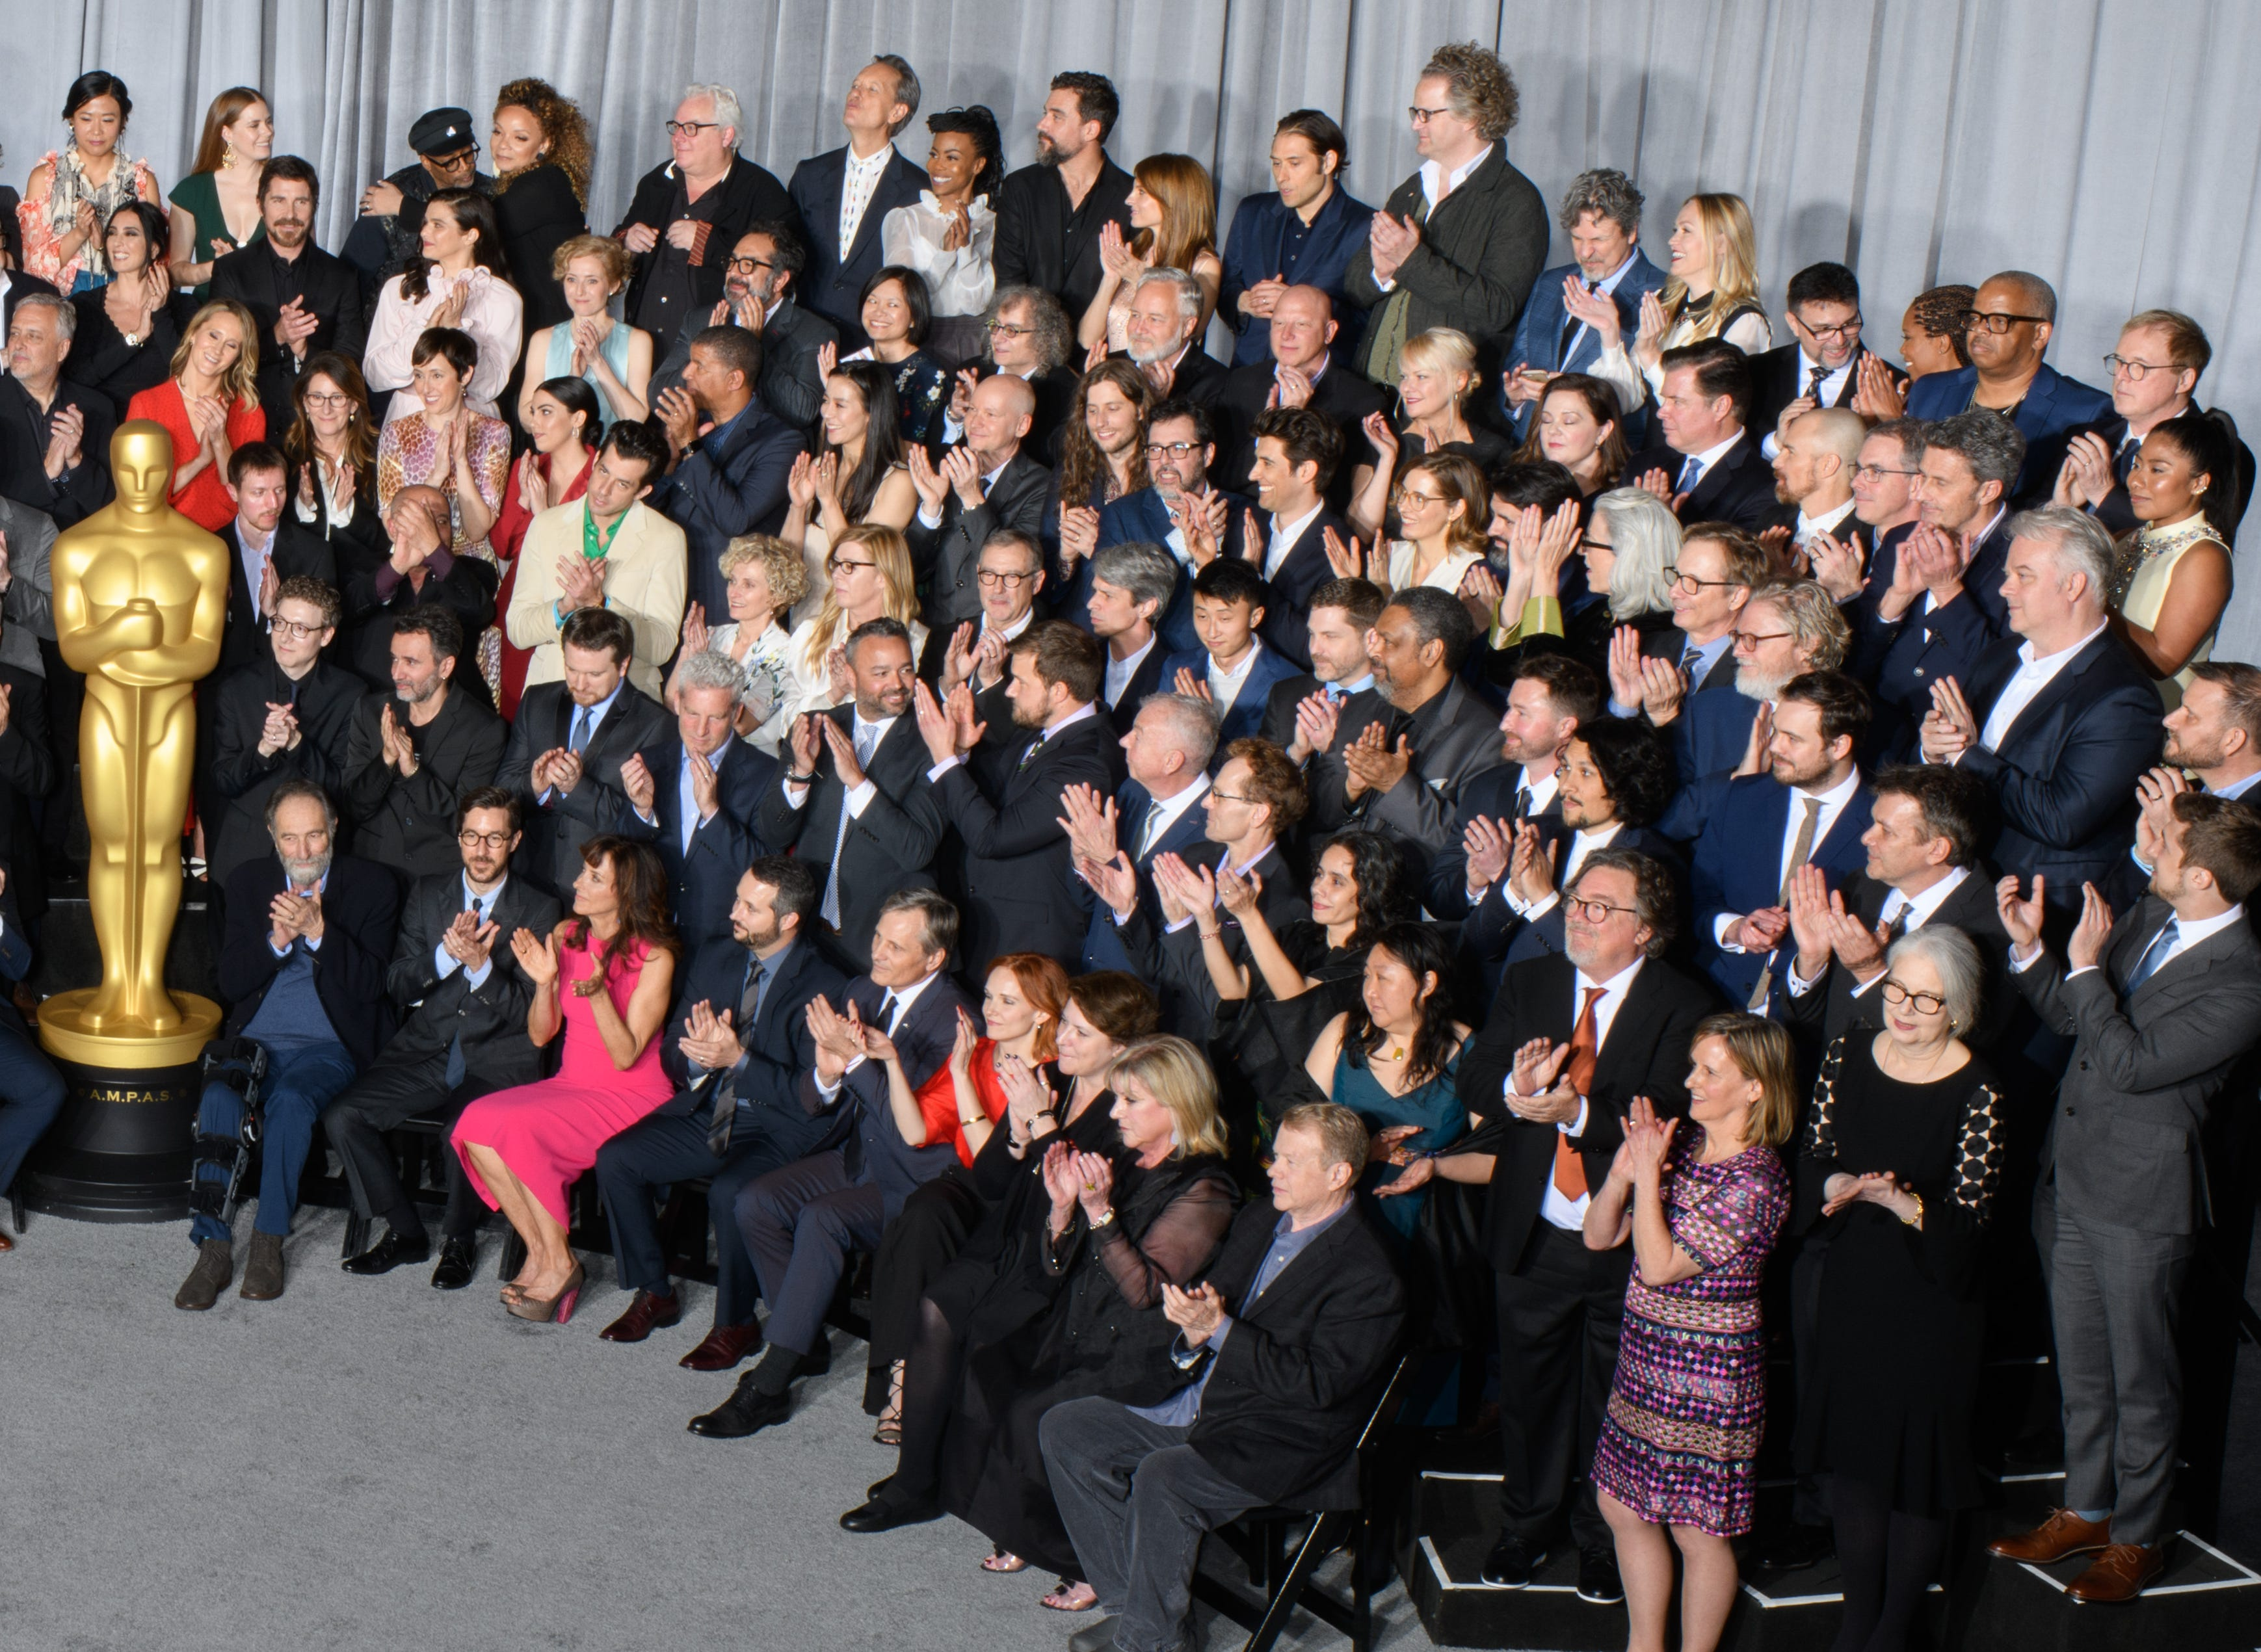 Nominees for the 91st Oscars assembled for a class photo.